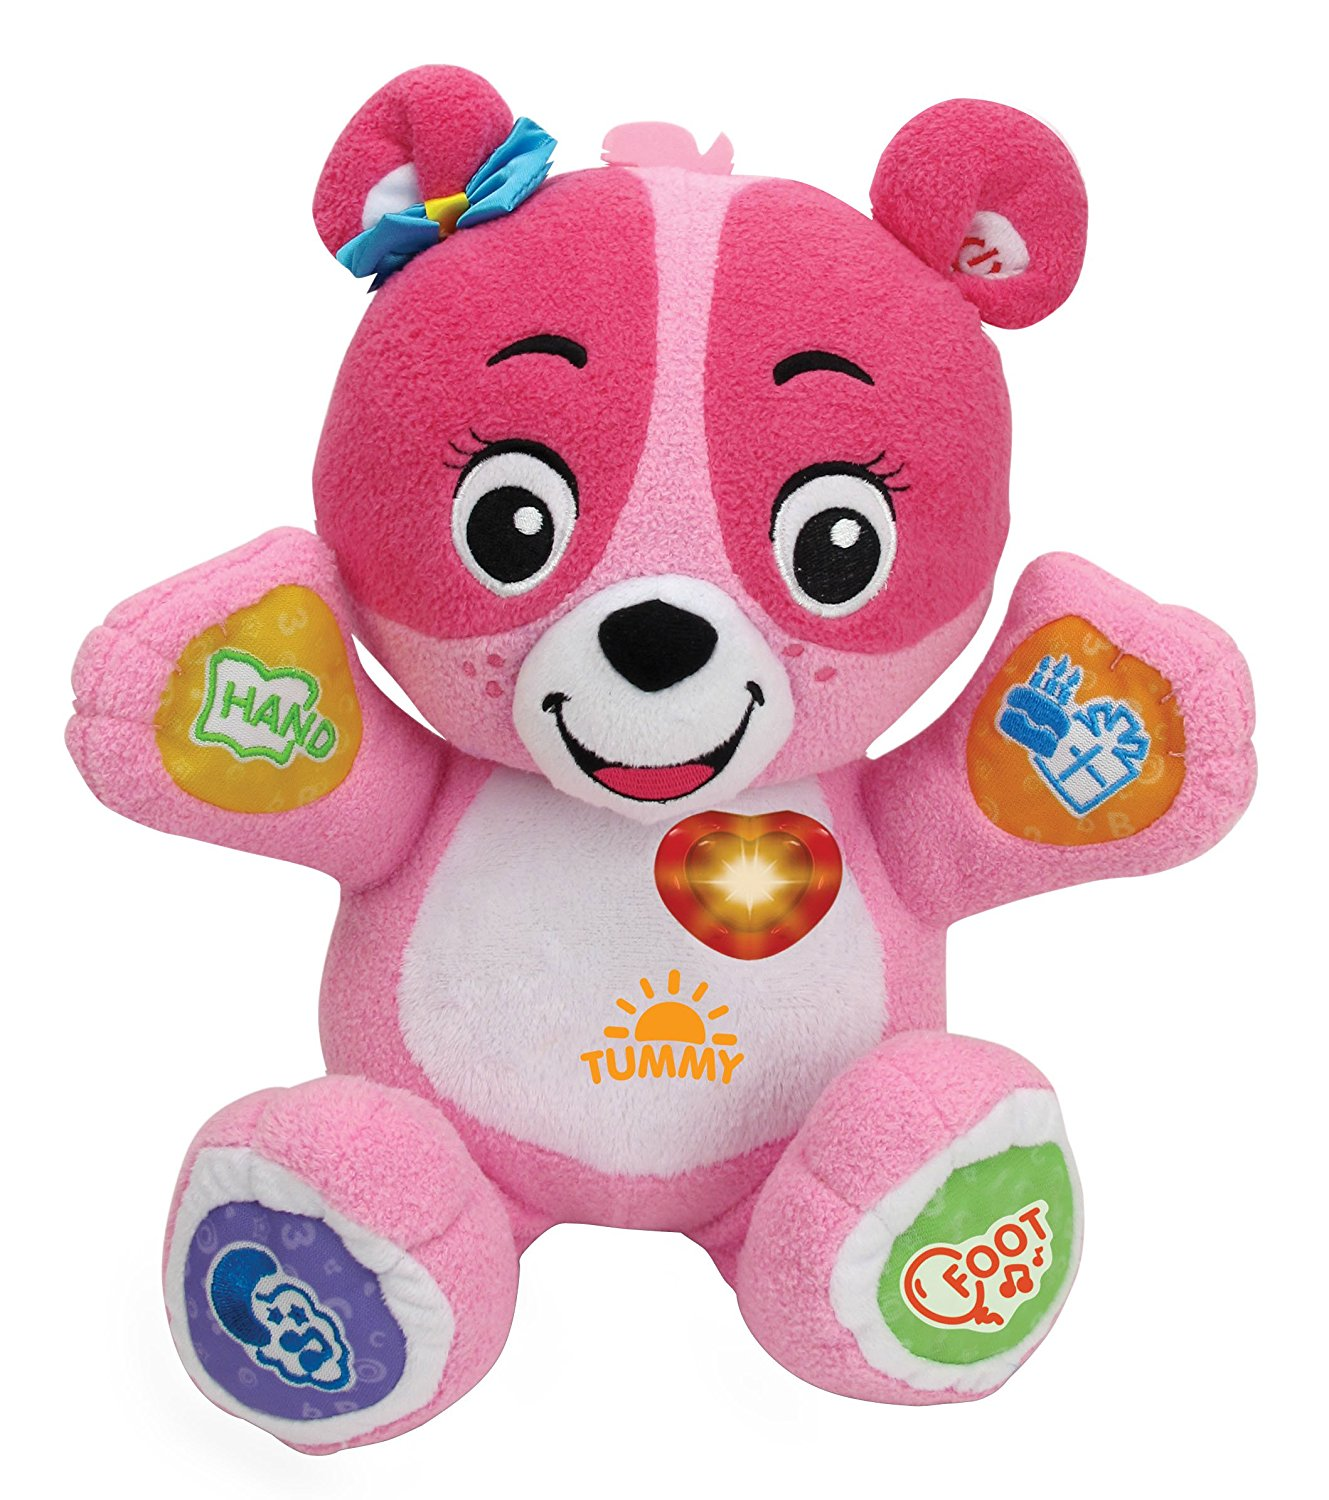 Cora The Smart Cub Plush Toy, Pink, Lovable plush learning companion for your child By... by